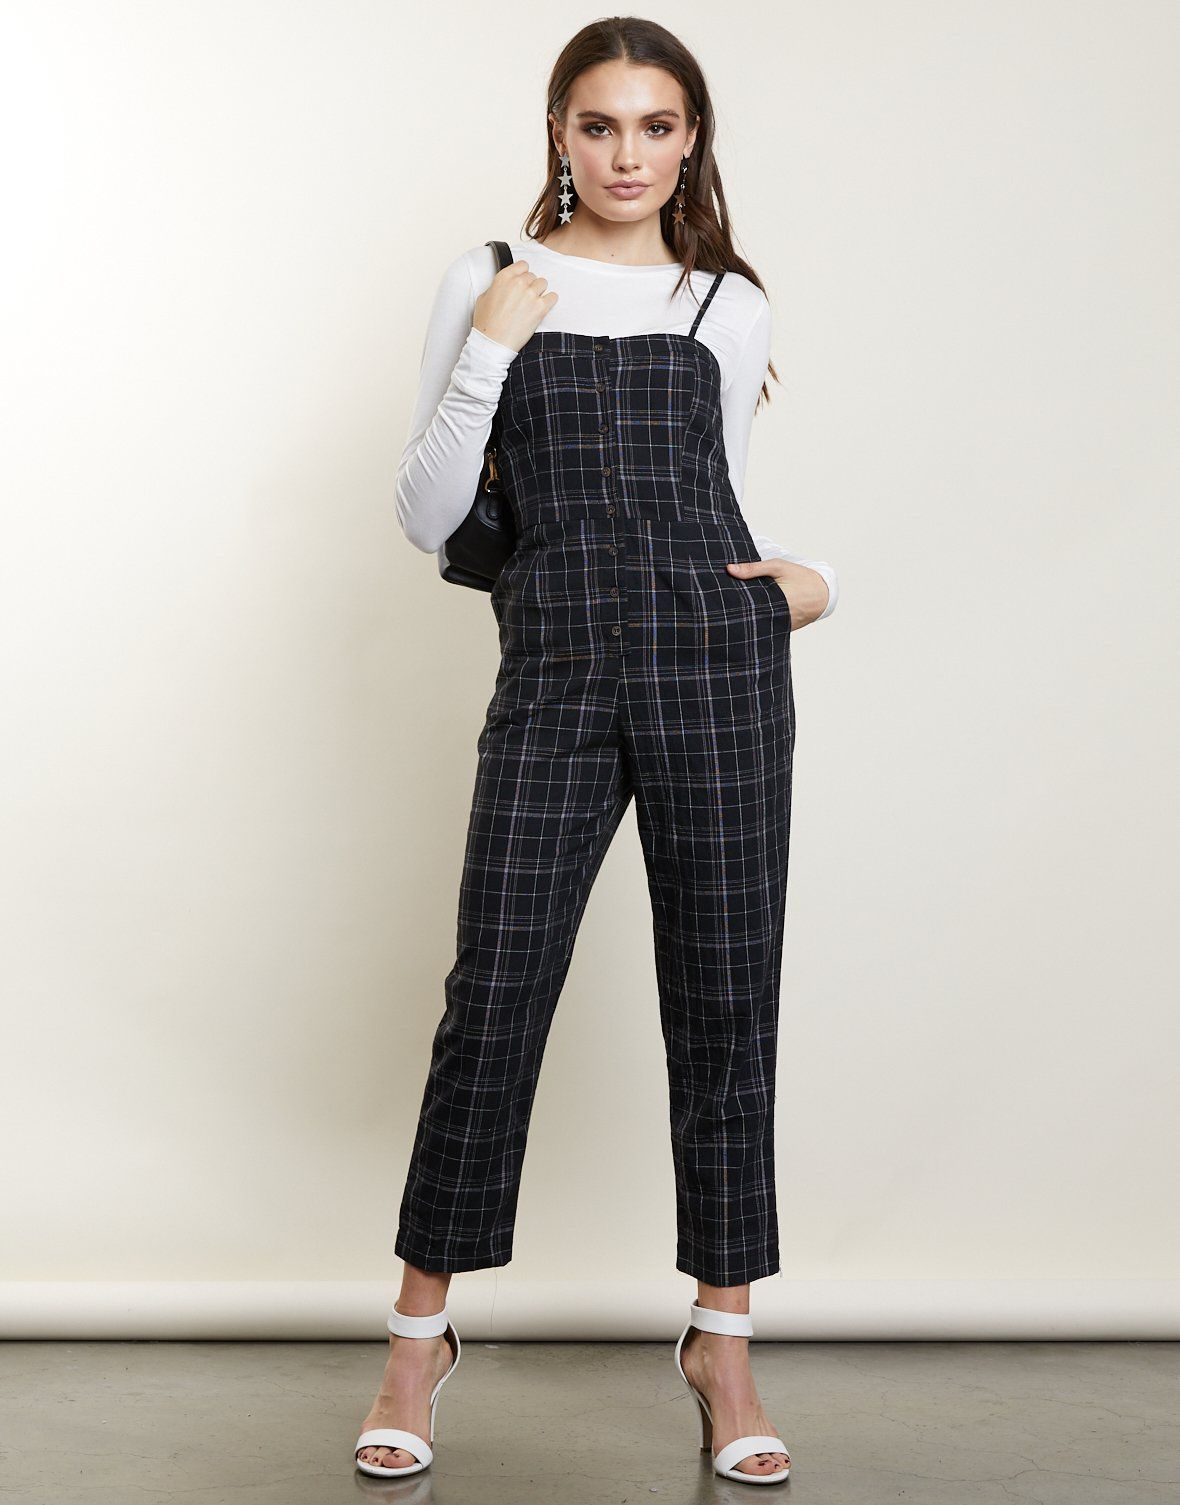 a045e2de76a8 New Roads Plaid Jumpsuit - black jumpsuit - casual jumpsuit – 2020AVE  jumpsuits for juniors